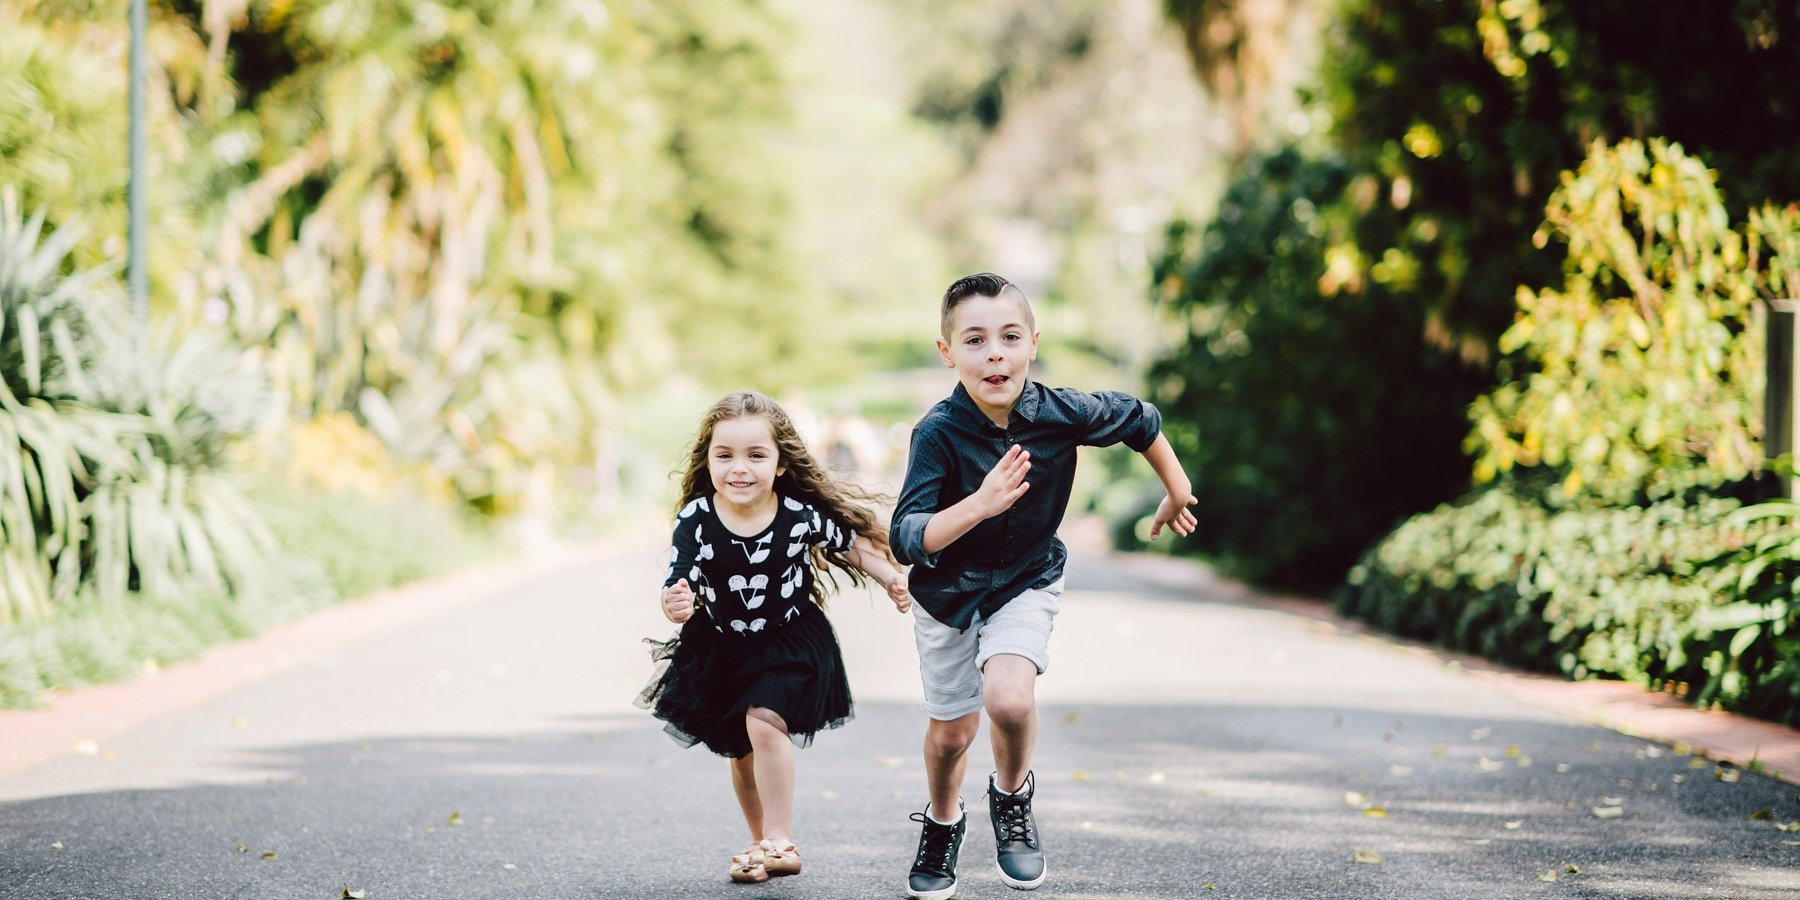 S2-Wild-Romantic-Photography-Kids-Birthday-Portraits-Melbourne-63